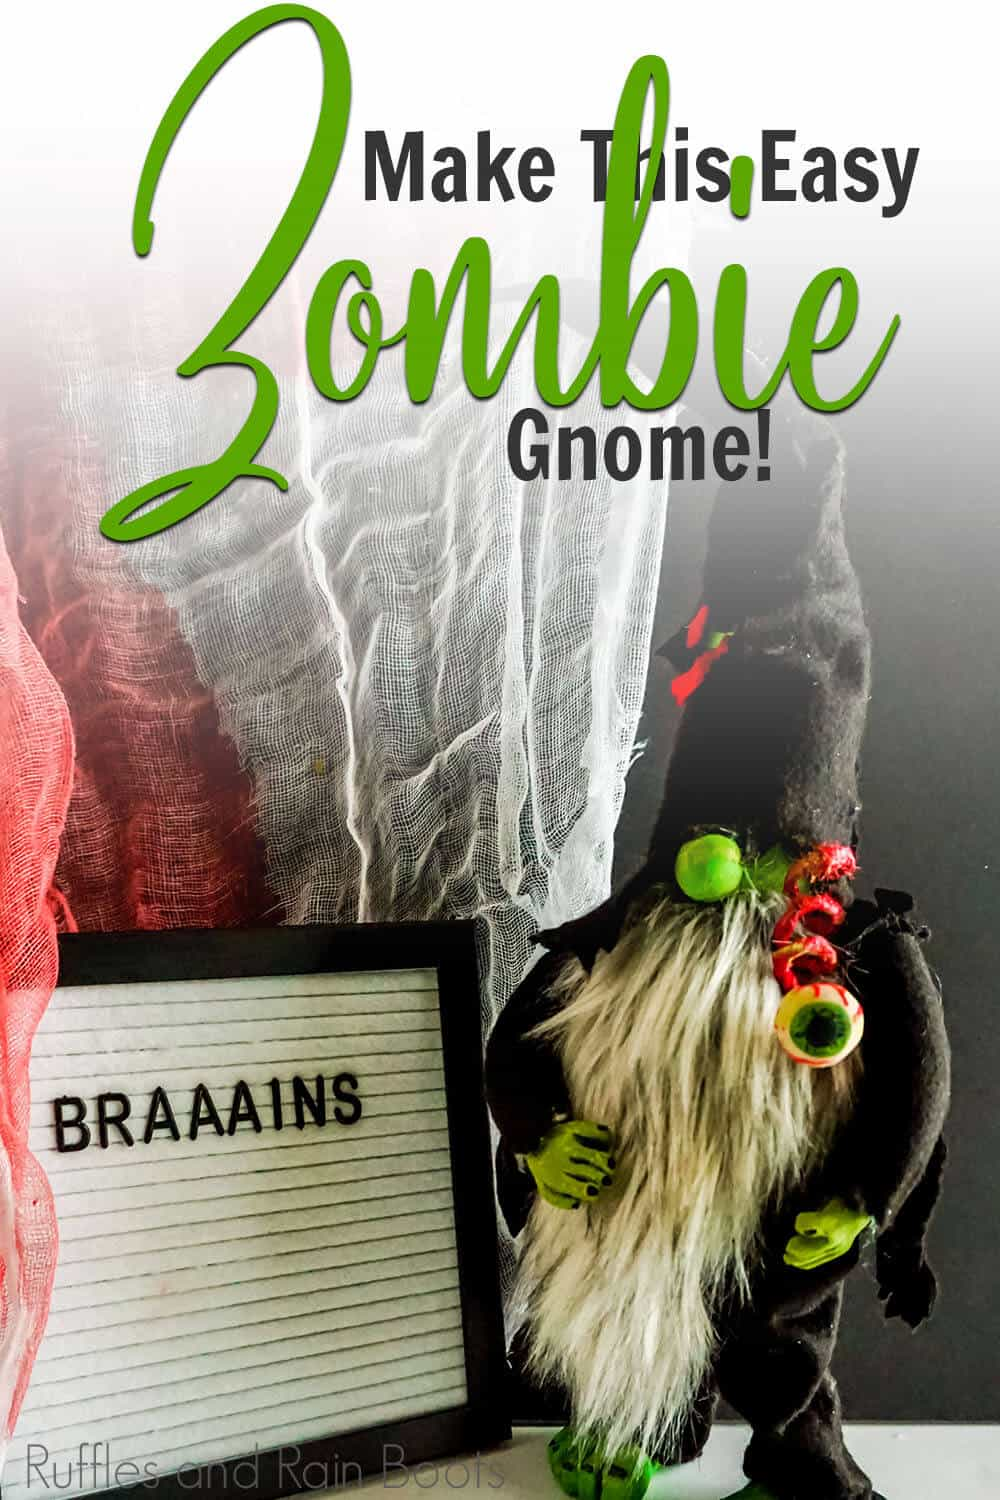 easy diy gnome farmhouse craft with text which reads make this easy zombie gnome!